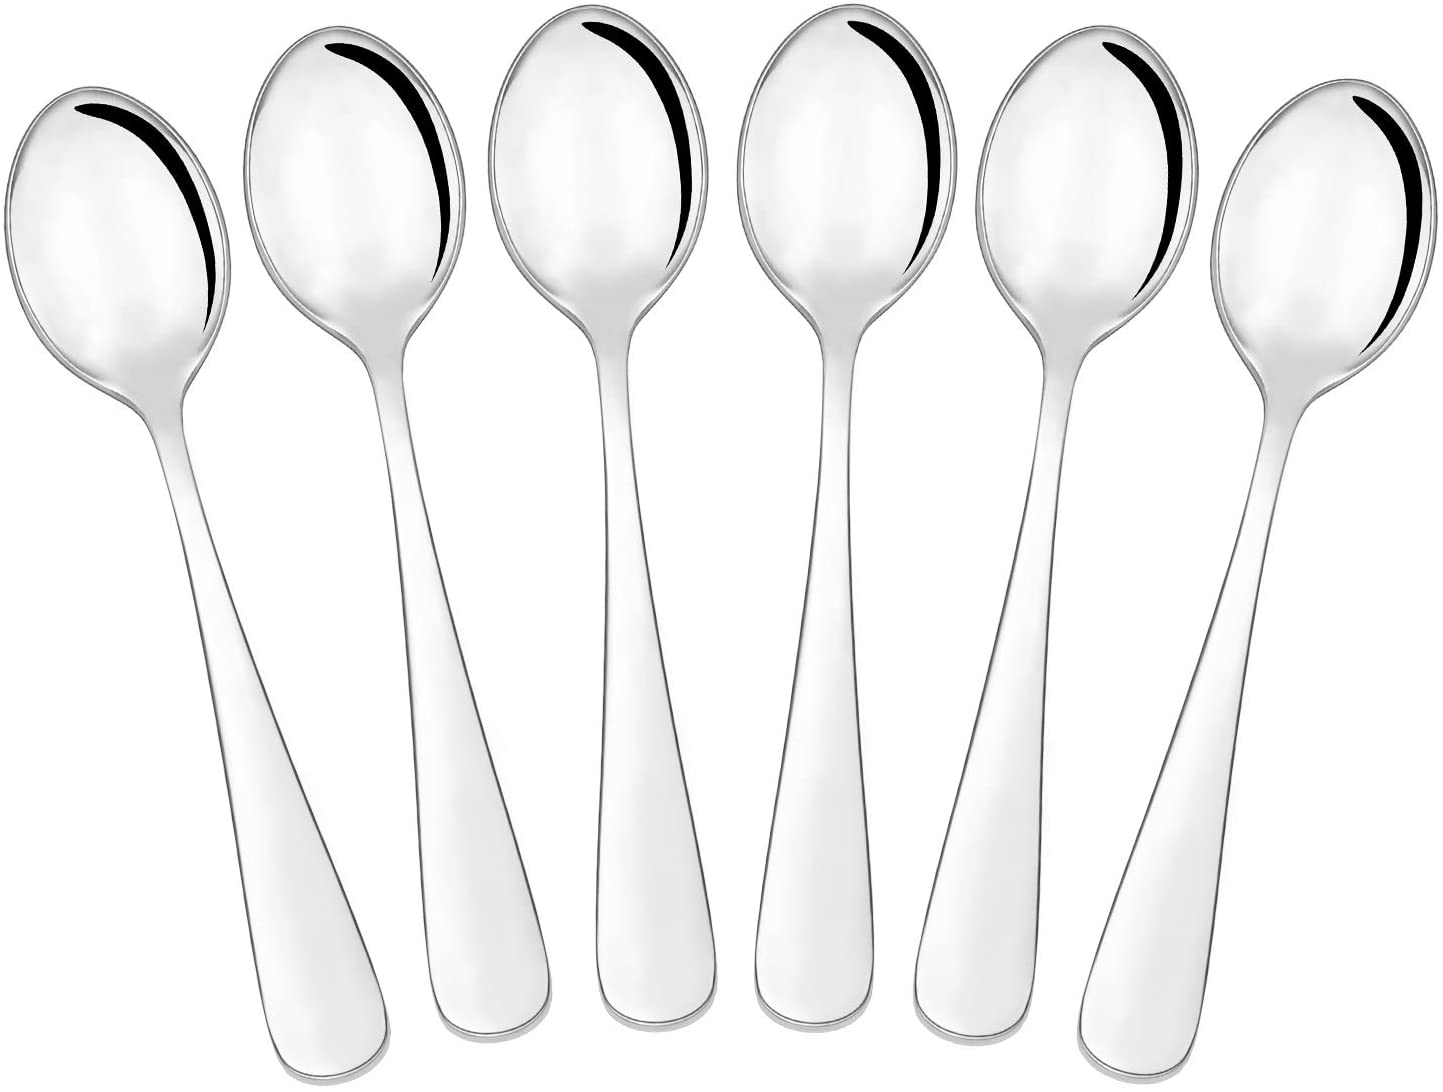 Hiware 6-Piece Demitasse Espresso Spoons, 4 Inches Stainless Steel Mini Coffee Spoons